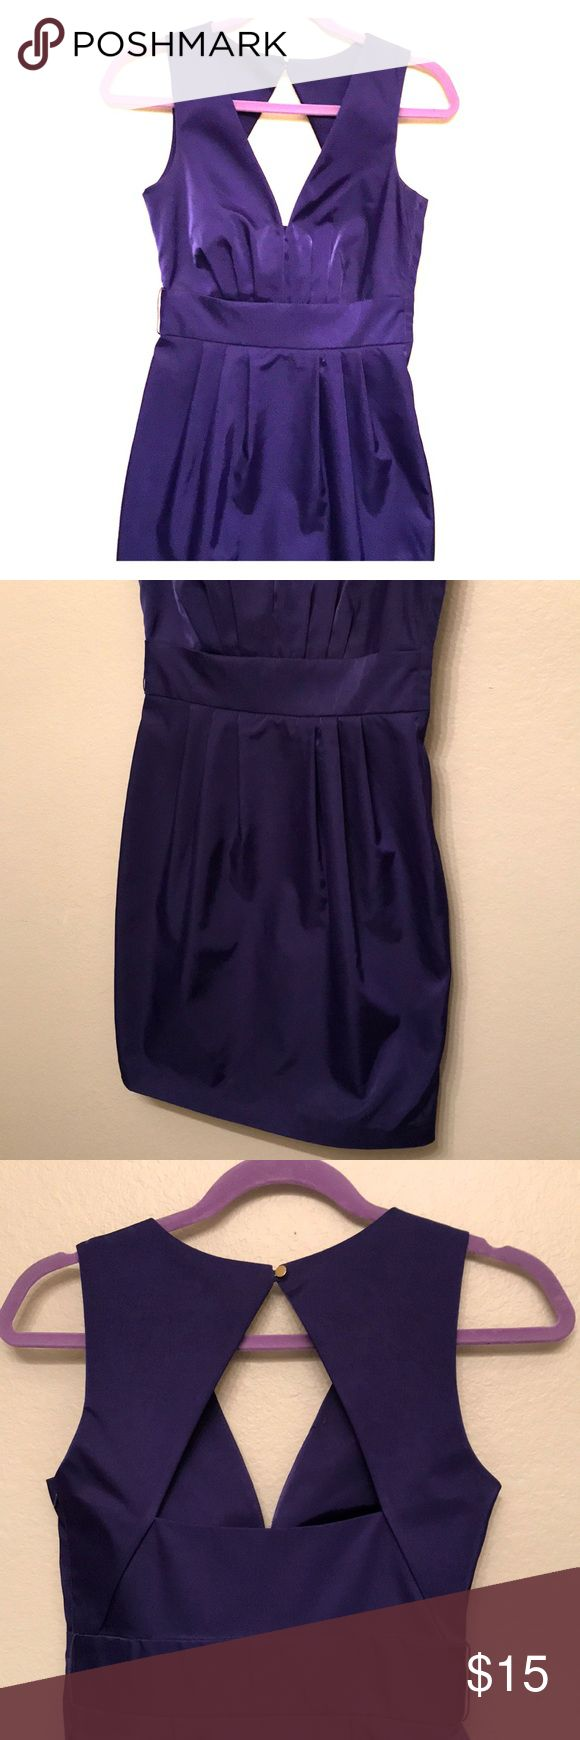 Purple night out dress Purple dress. Not so mini. Passed finger length. Small slit in the back. Side zipper. Belt holes. Semi backless (see photos). Extra buttons attached to inside tag. 100% Polyester. H&M Dresses Mini